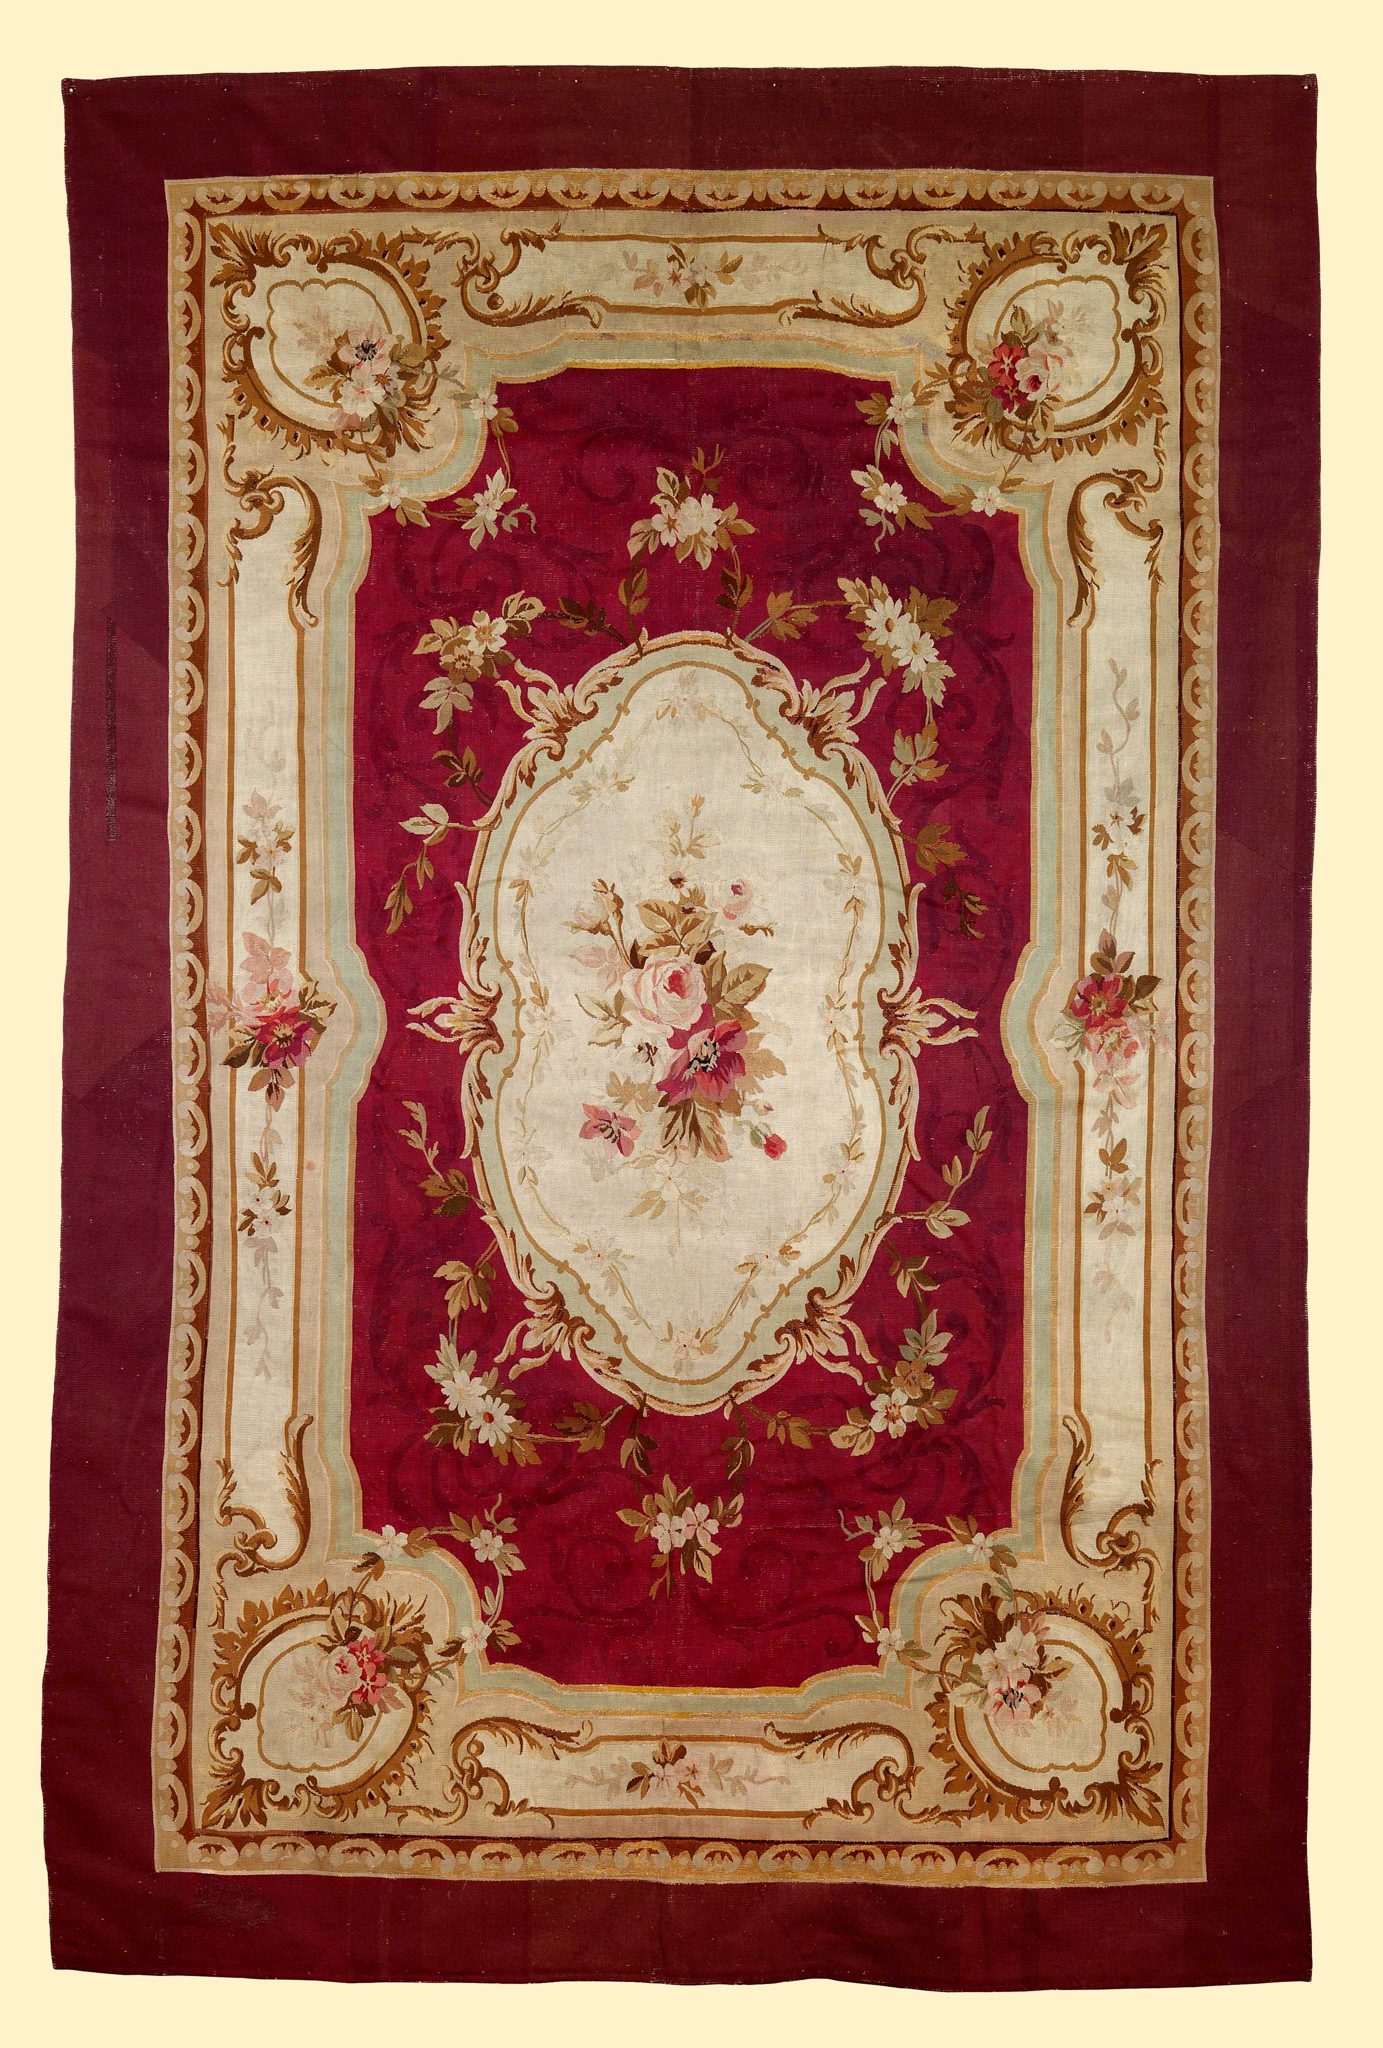 """Tappeto Aubusson""""Aubusson carpet"" - Francia '800200 cm x 308 cm____________________France 19th century6ft 8in x 10ft 3in>>>Click the image to enlarge"